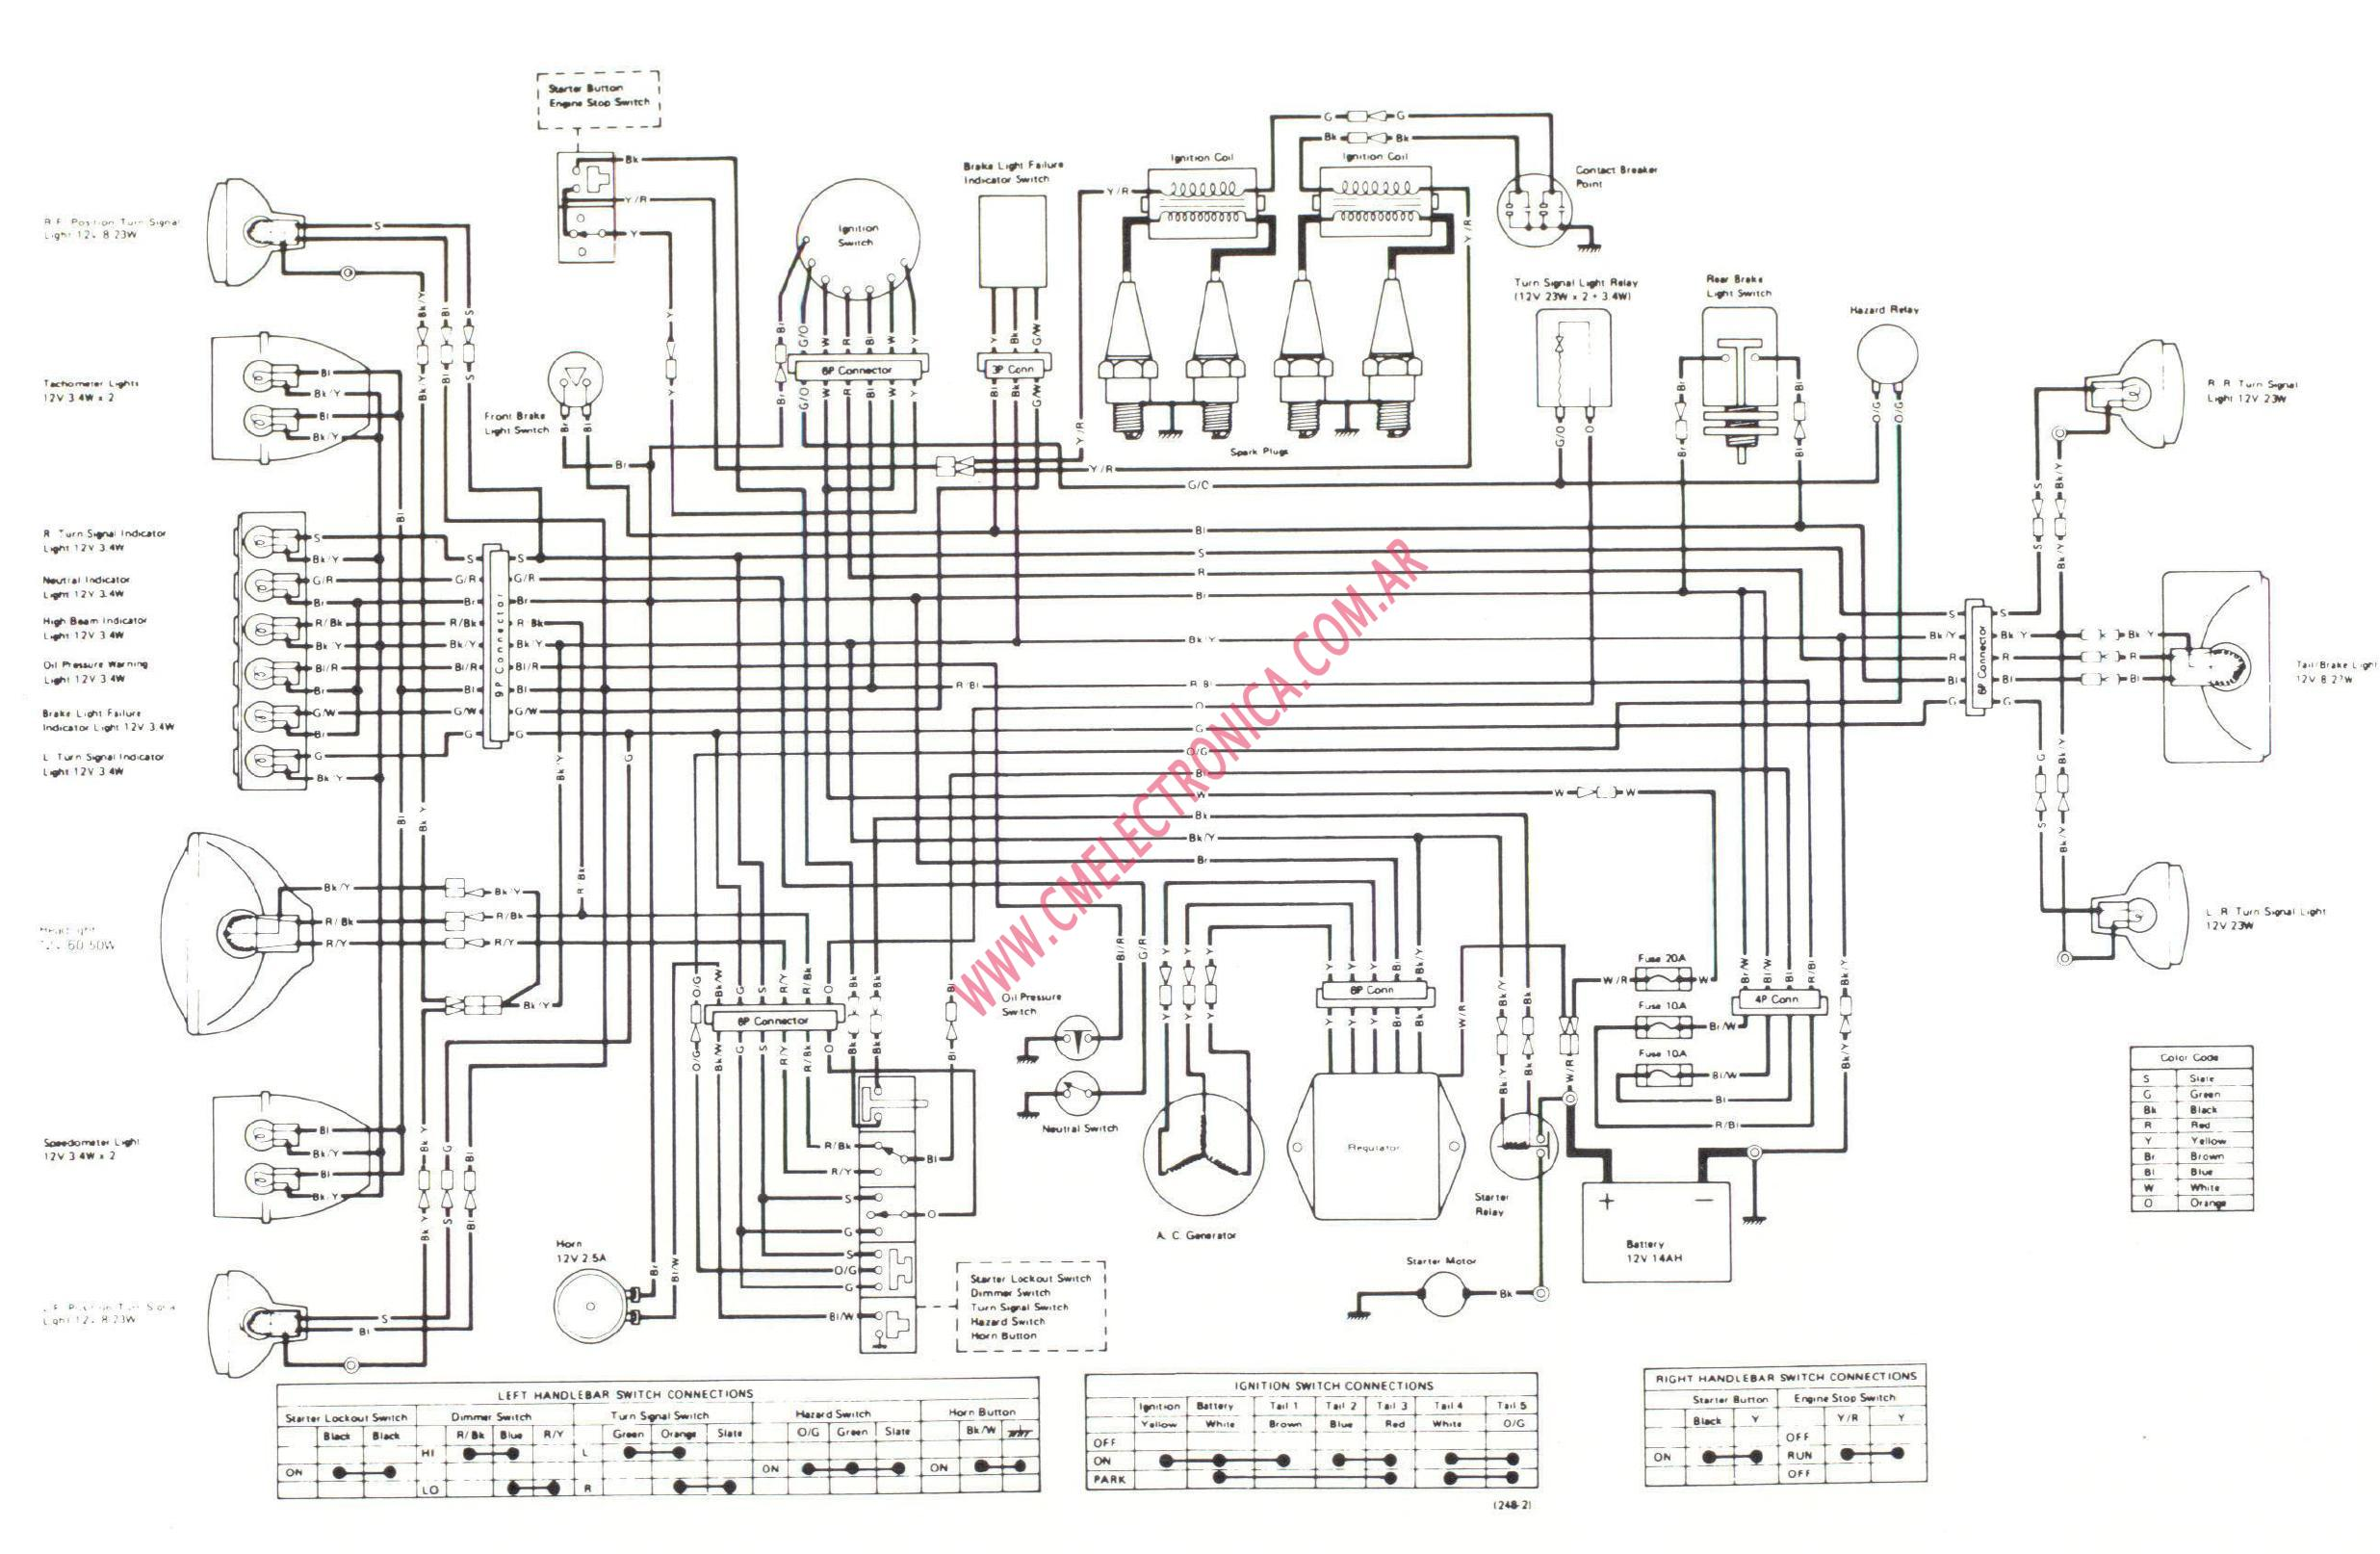 kz1000 wiring diagram picture | wiring library ninja 500r wiring diagram ninja 250 wiring diagram